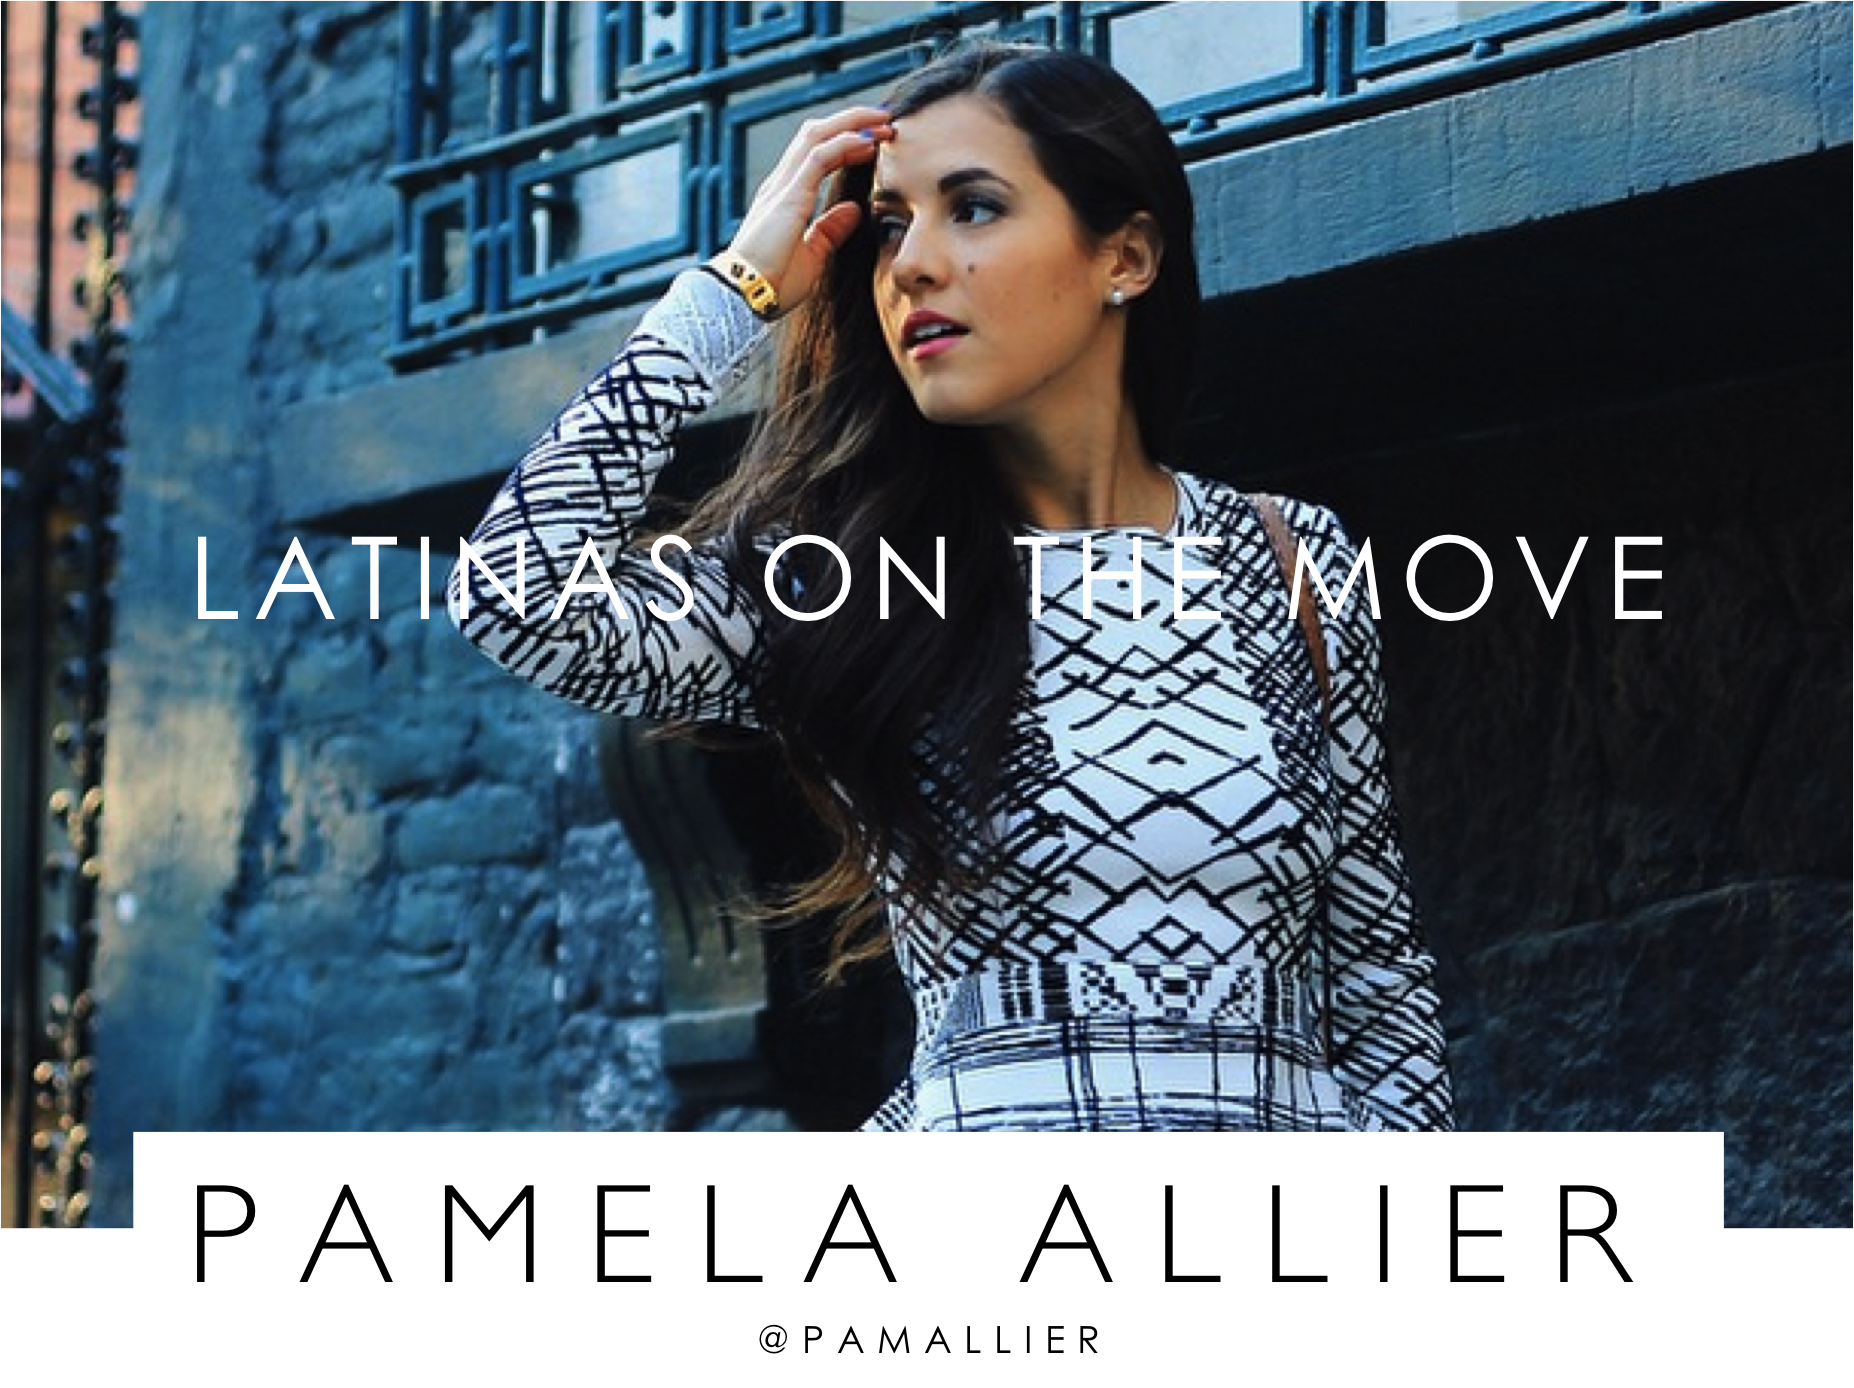 LATINAS ON THE MOVE PAMELA ALLIER